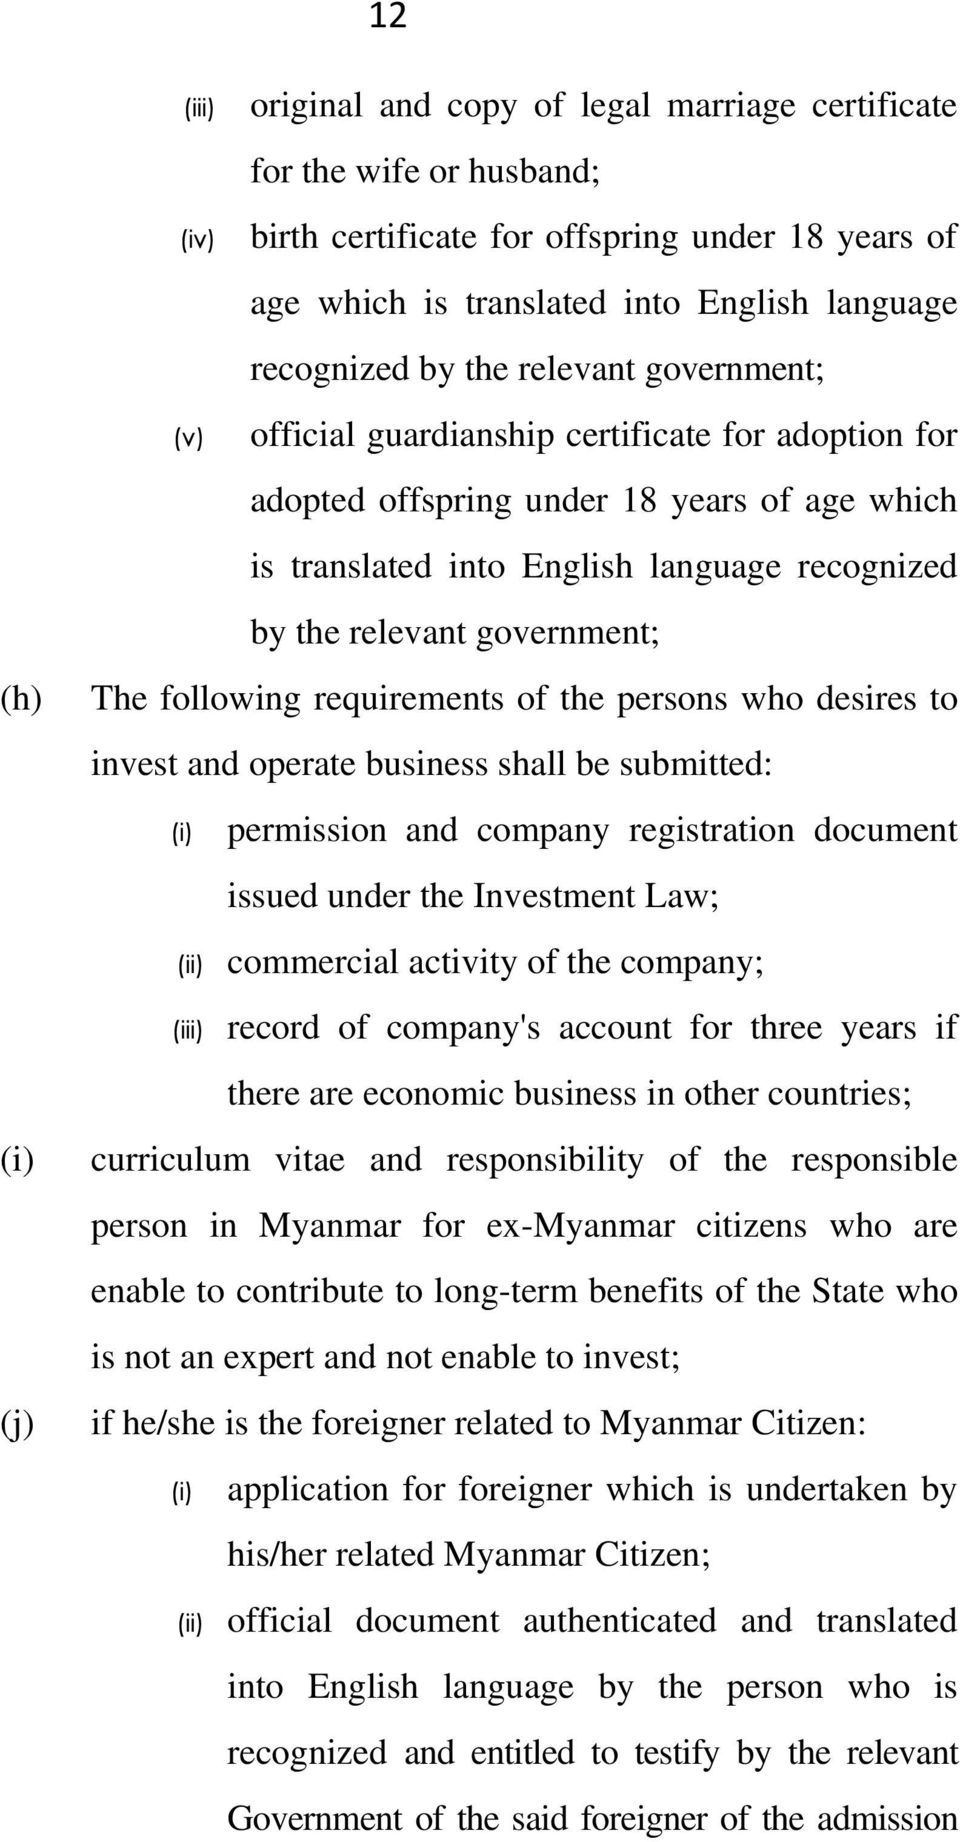 government; (h) The following requirements of the persons who desires to invest and operate business shall be submitted: (i) permission and company registration document issued under the Investment